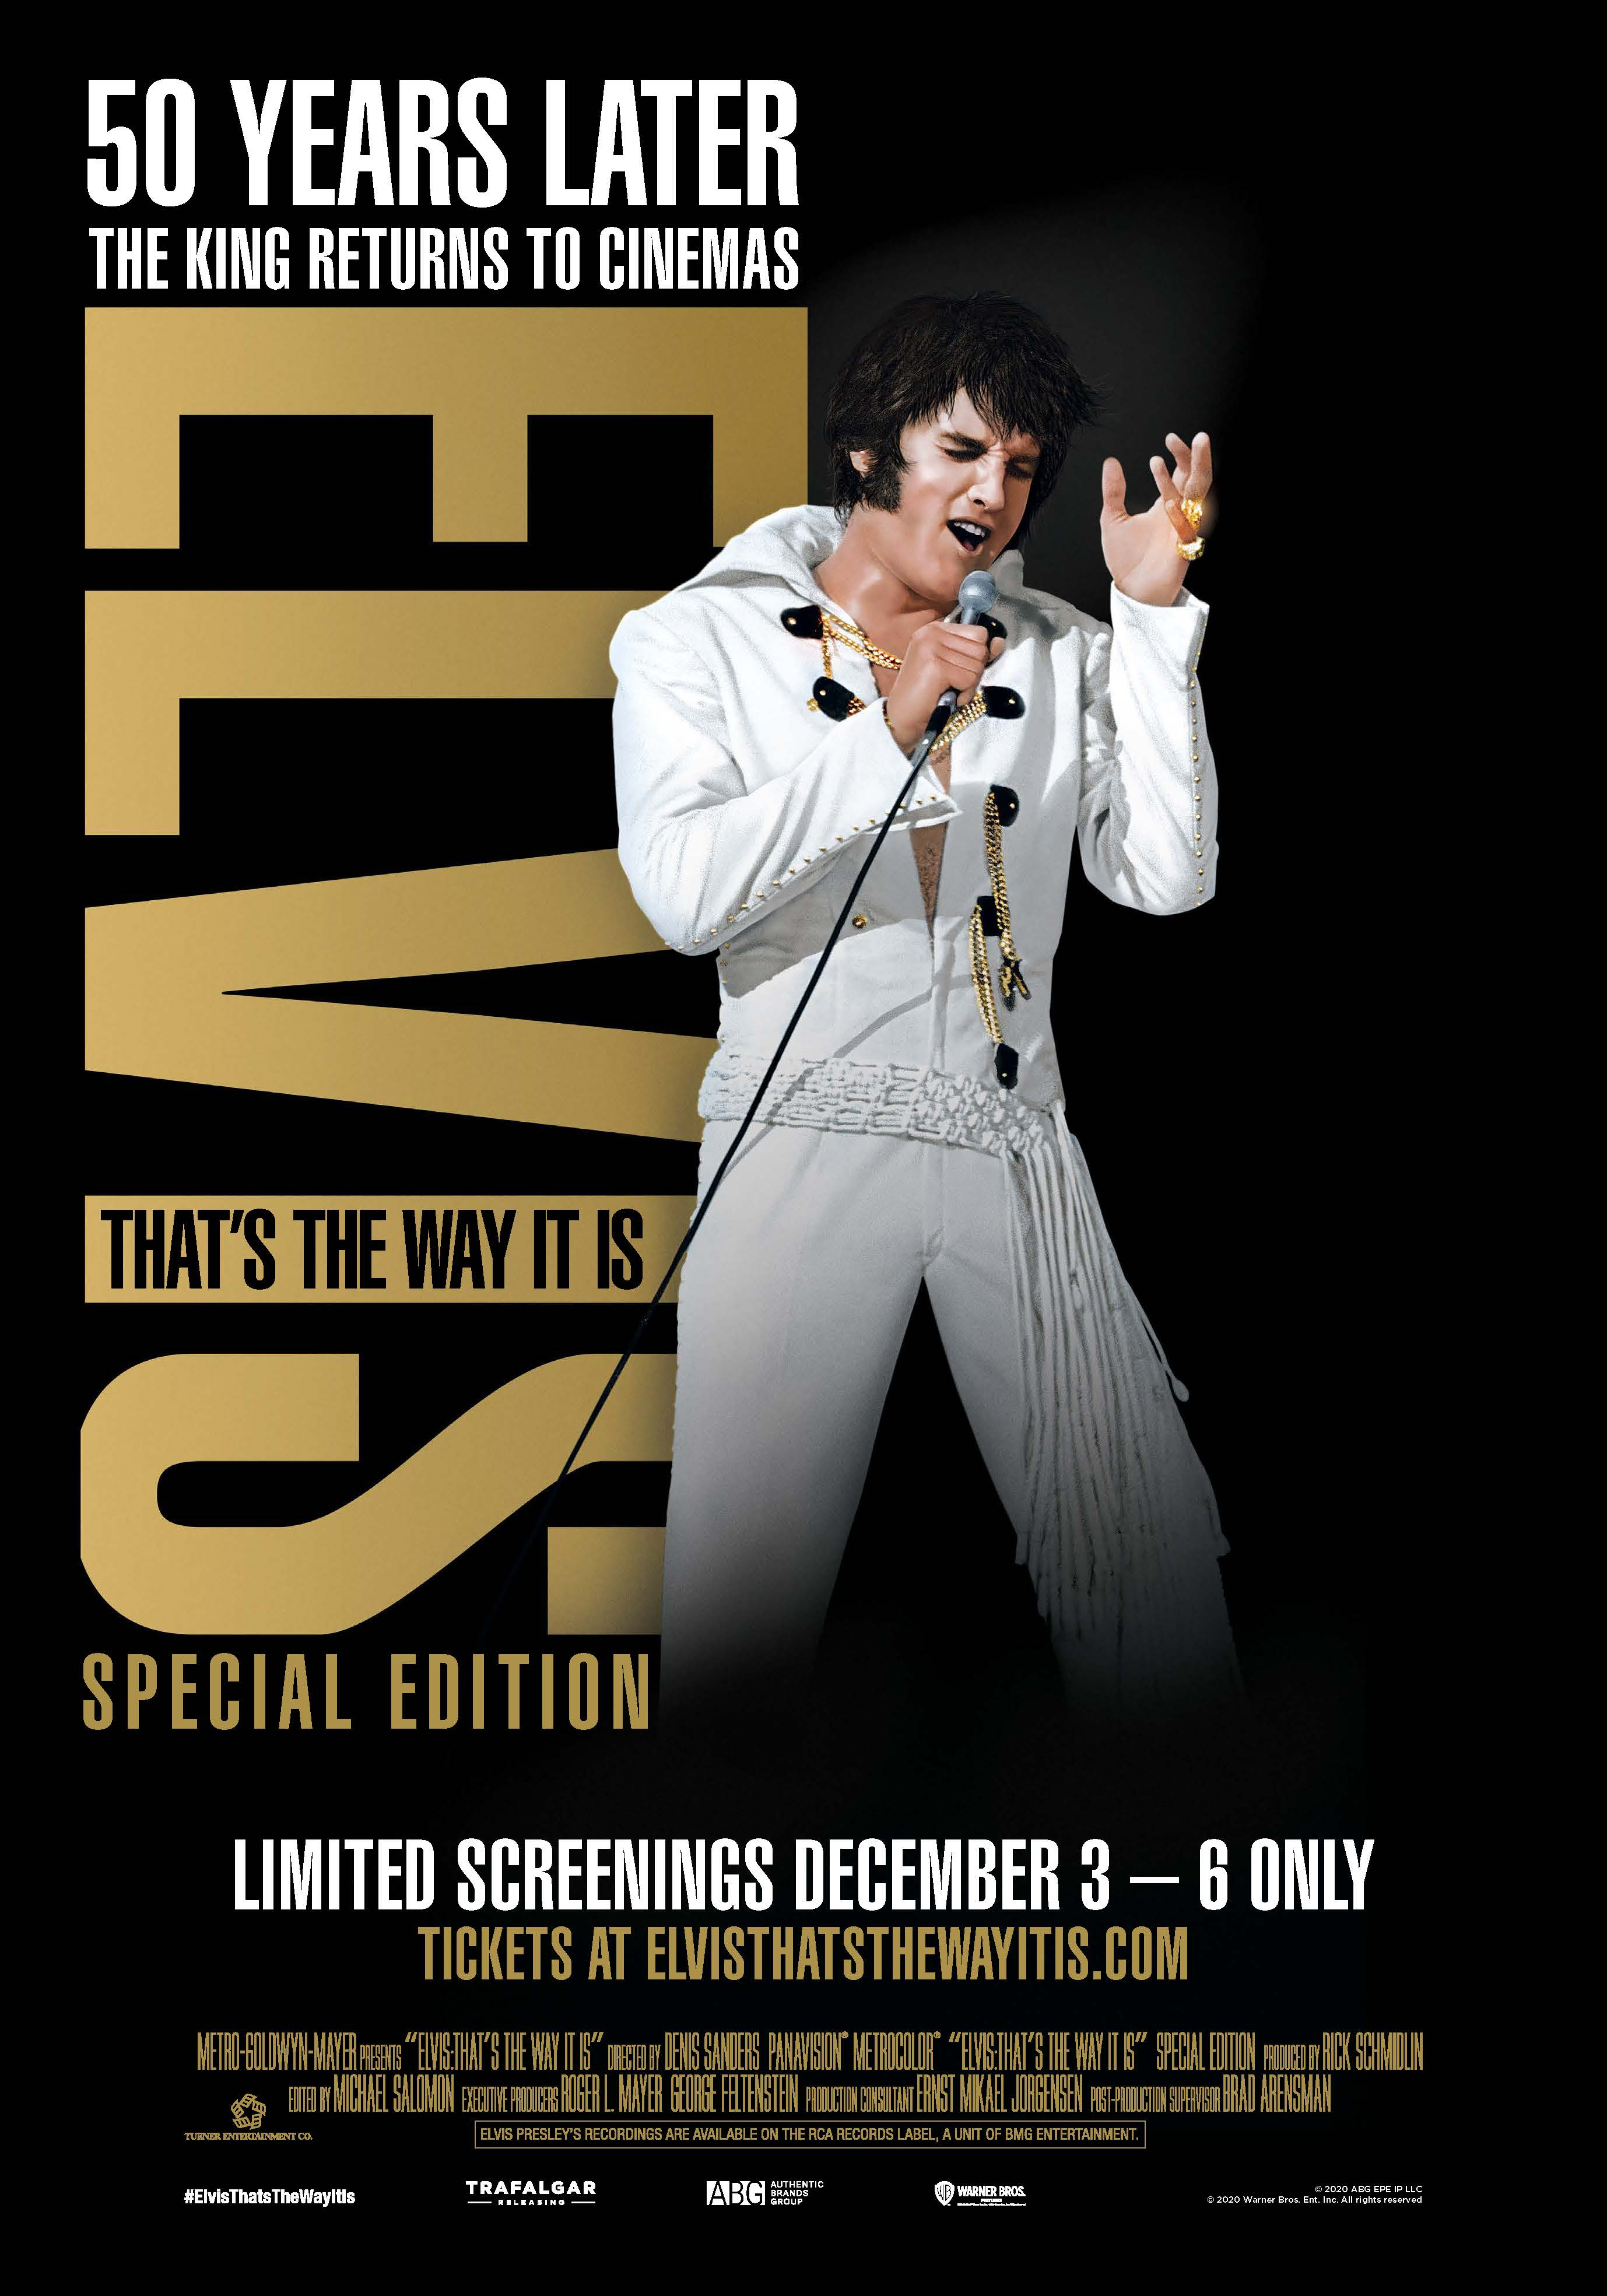 Movie poster image for ELVIS: THAT'S THE WAY IT IS – SPECIAL EDITION